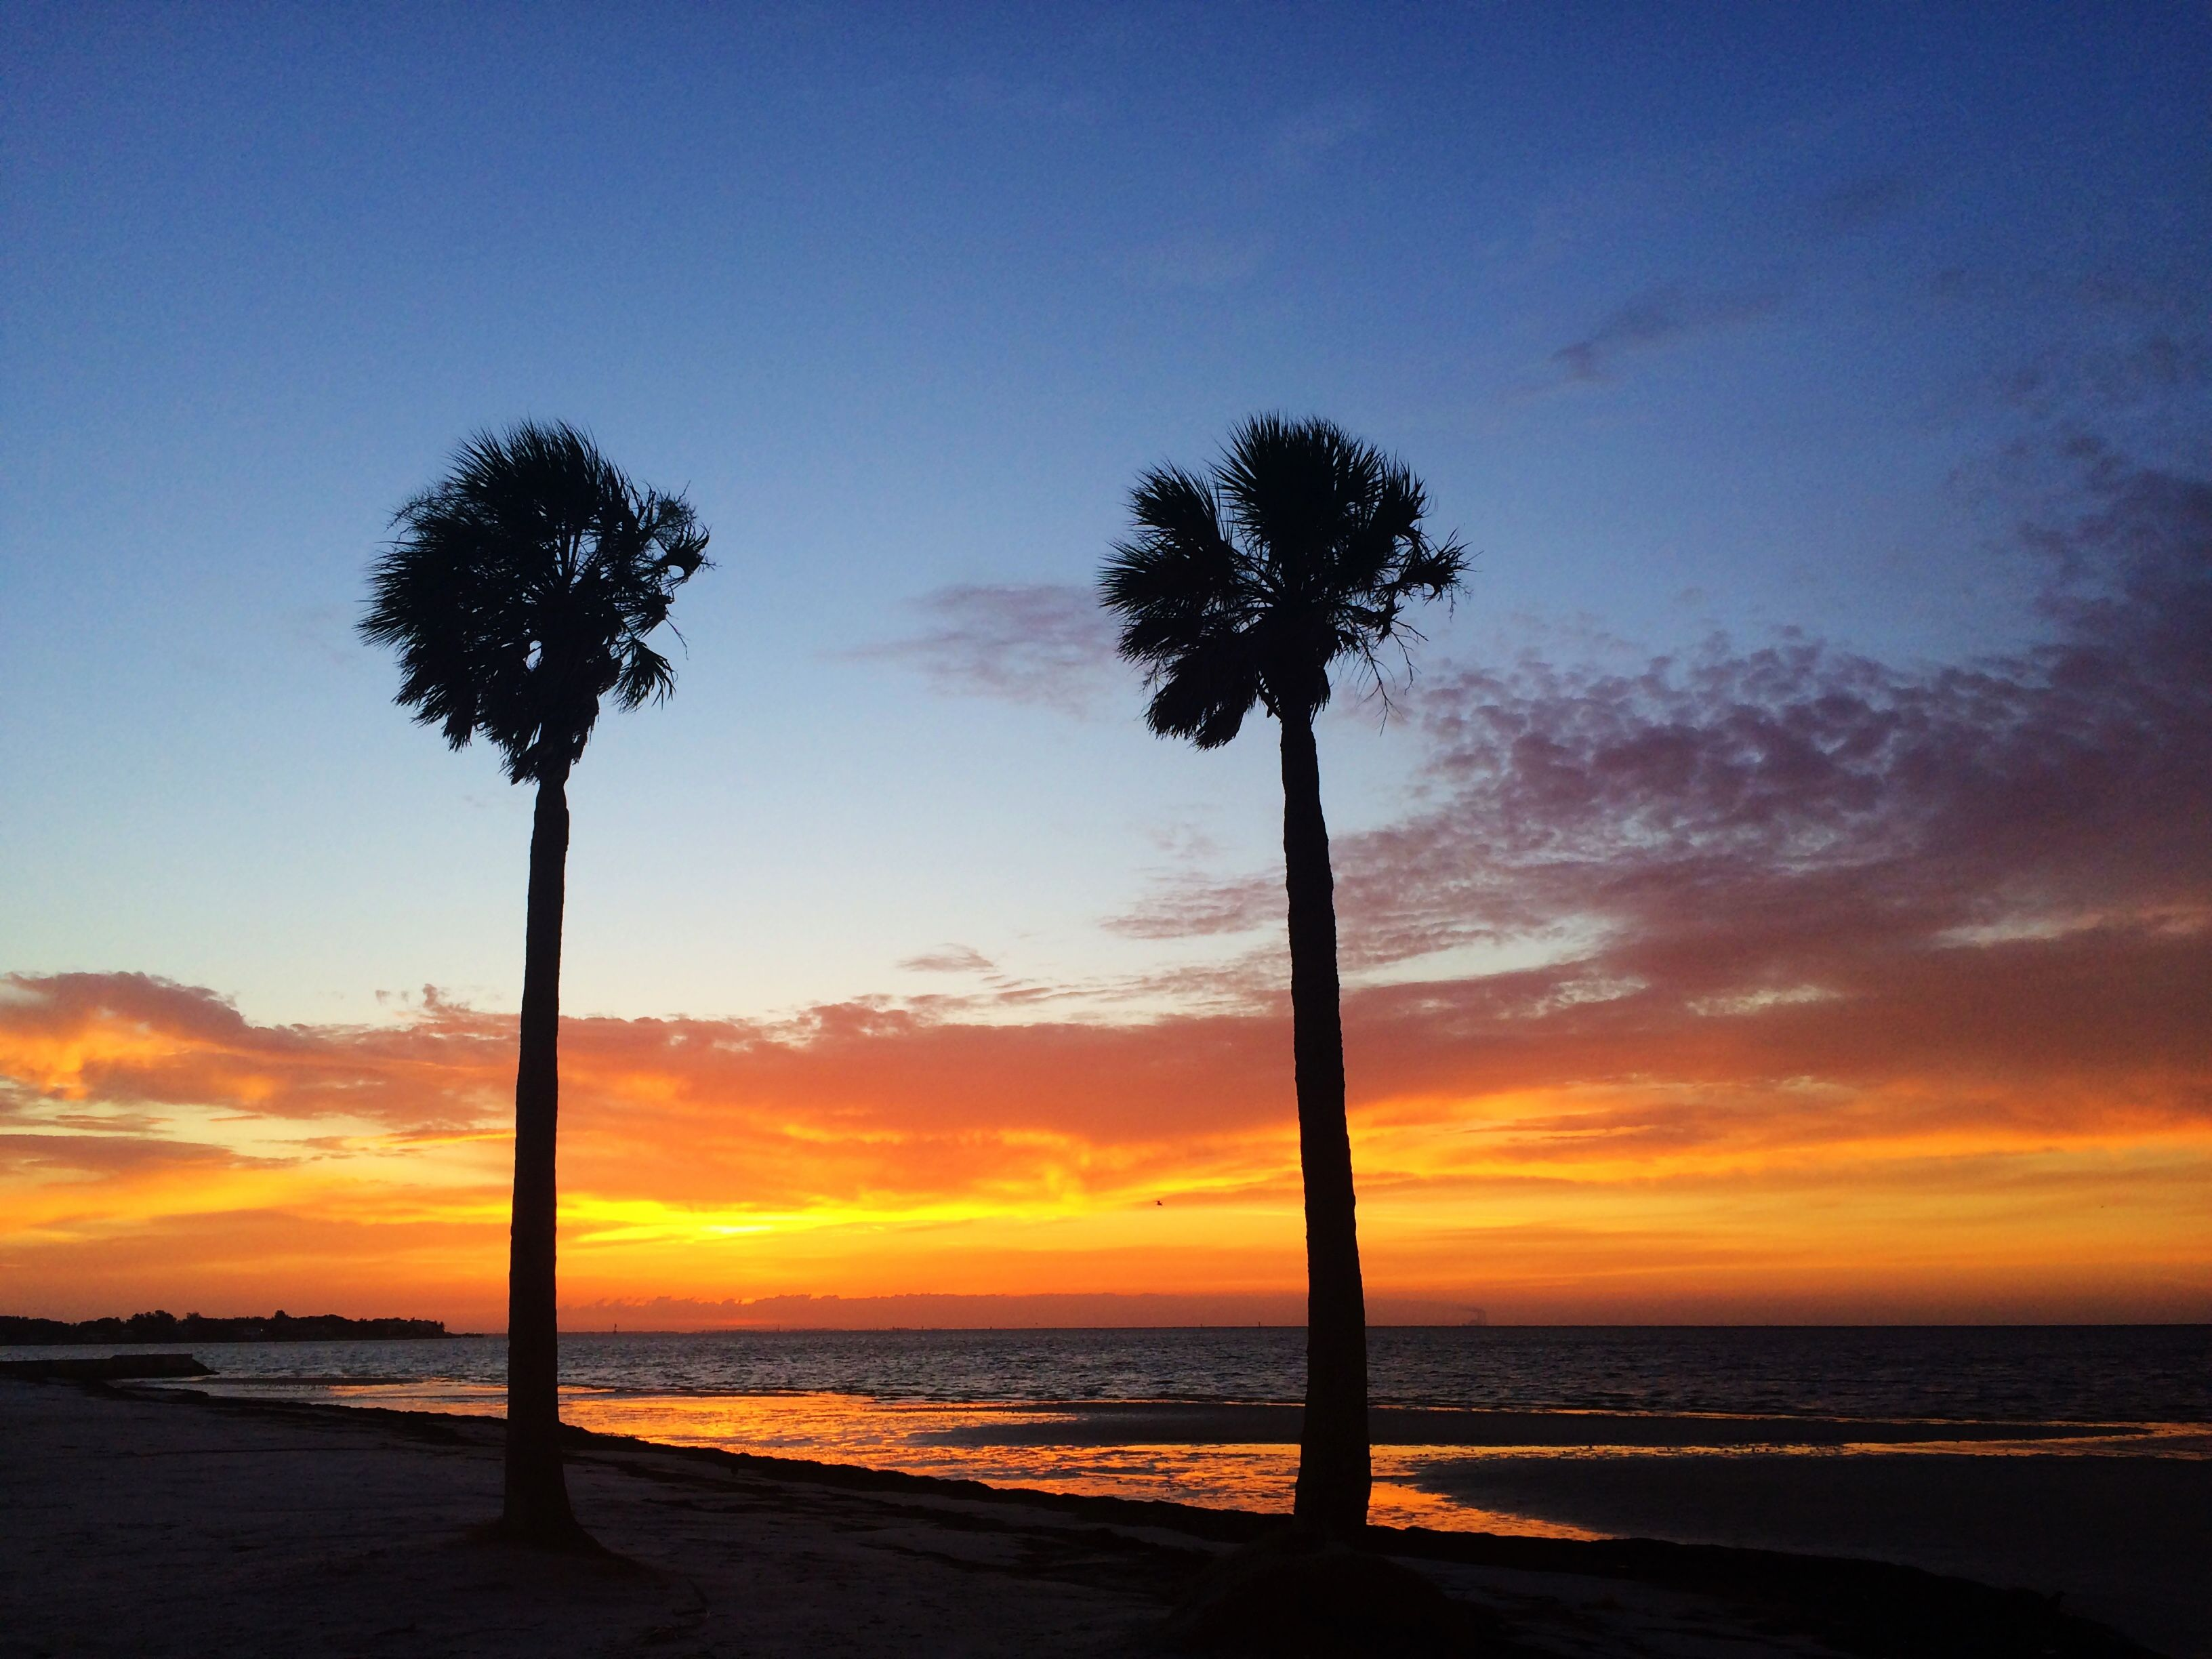 Spectacular sunrise from North Shore Park in St. Pete